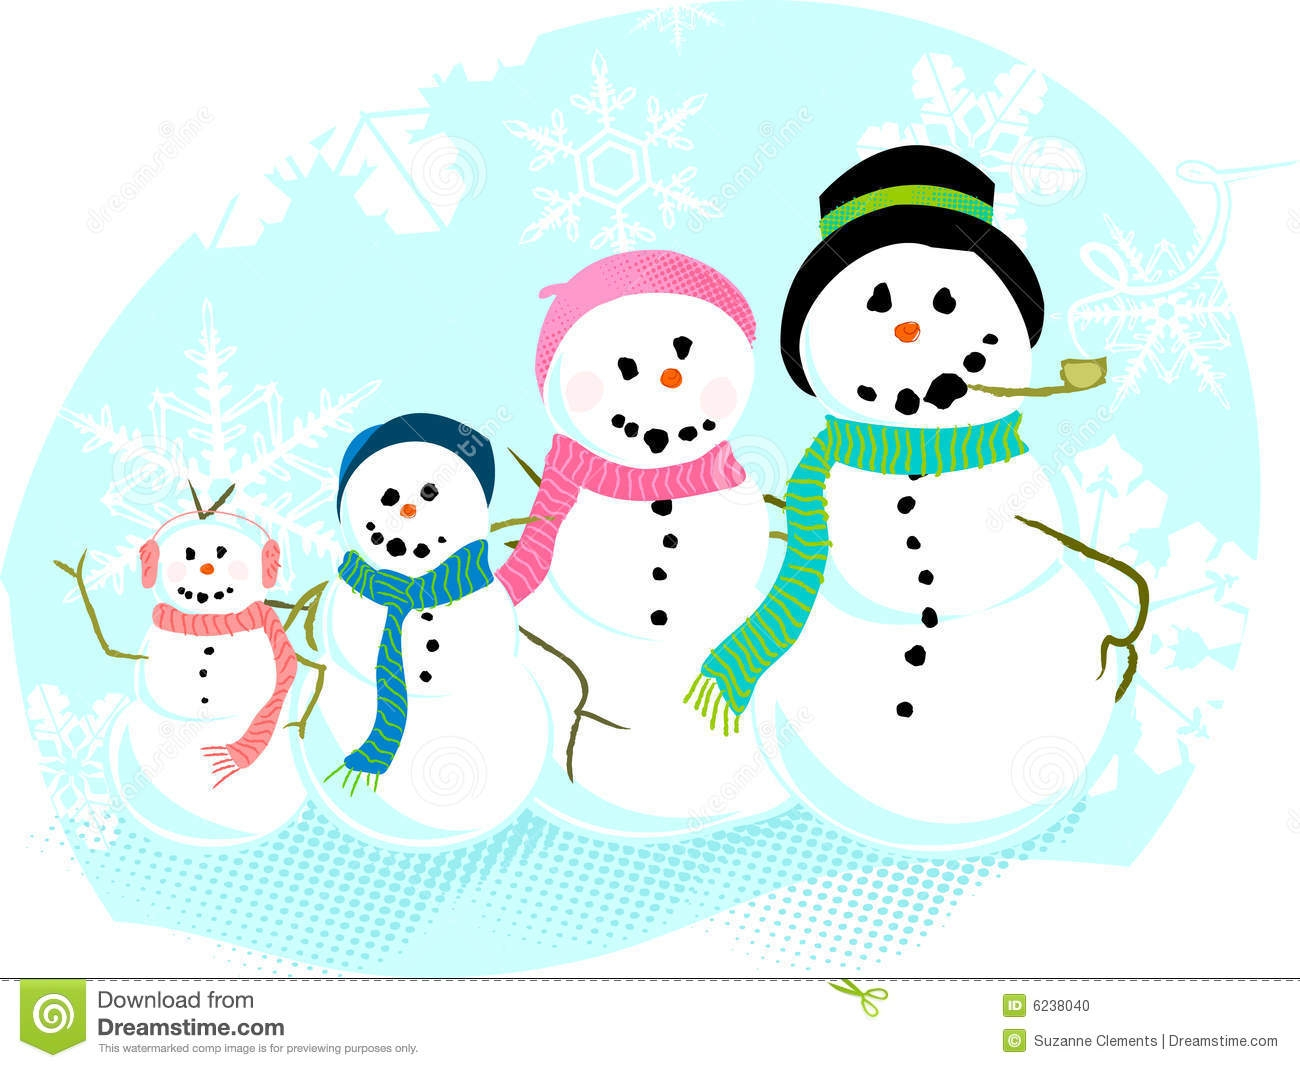 Snowman clipart snowman family Family www clipartsgram Bing images